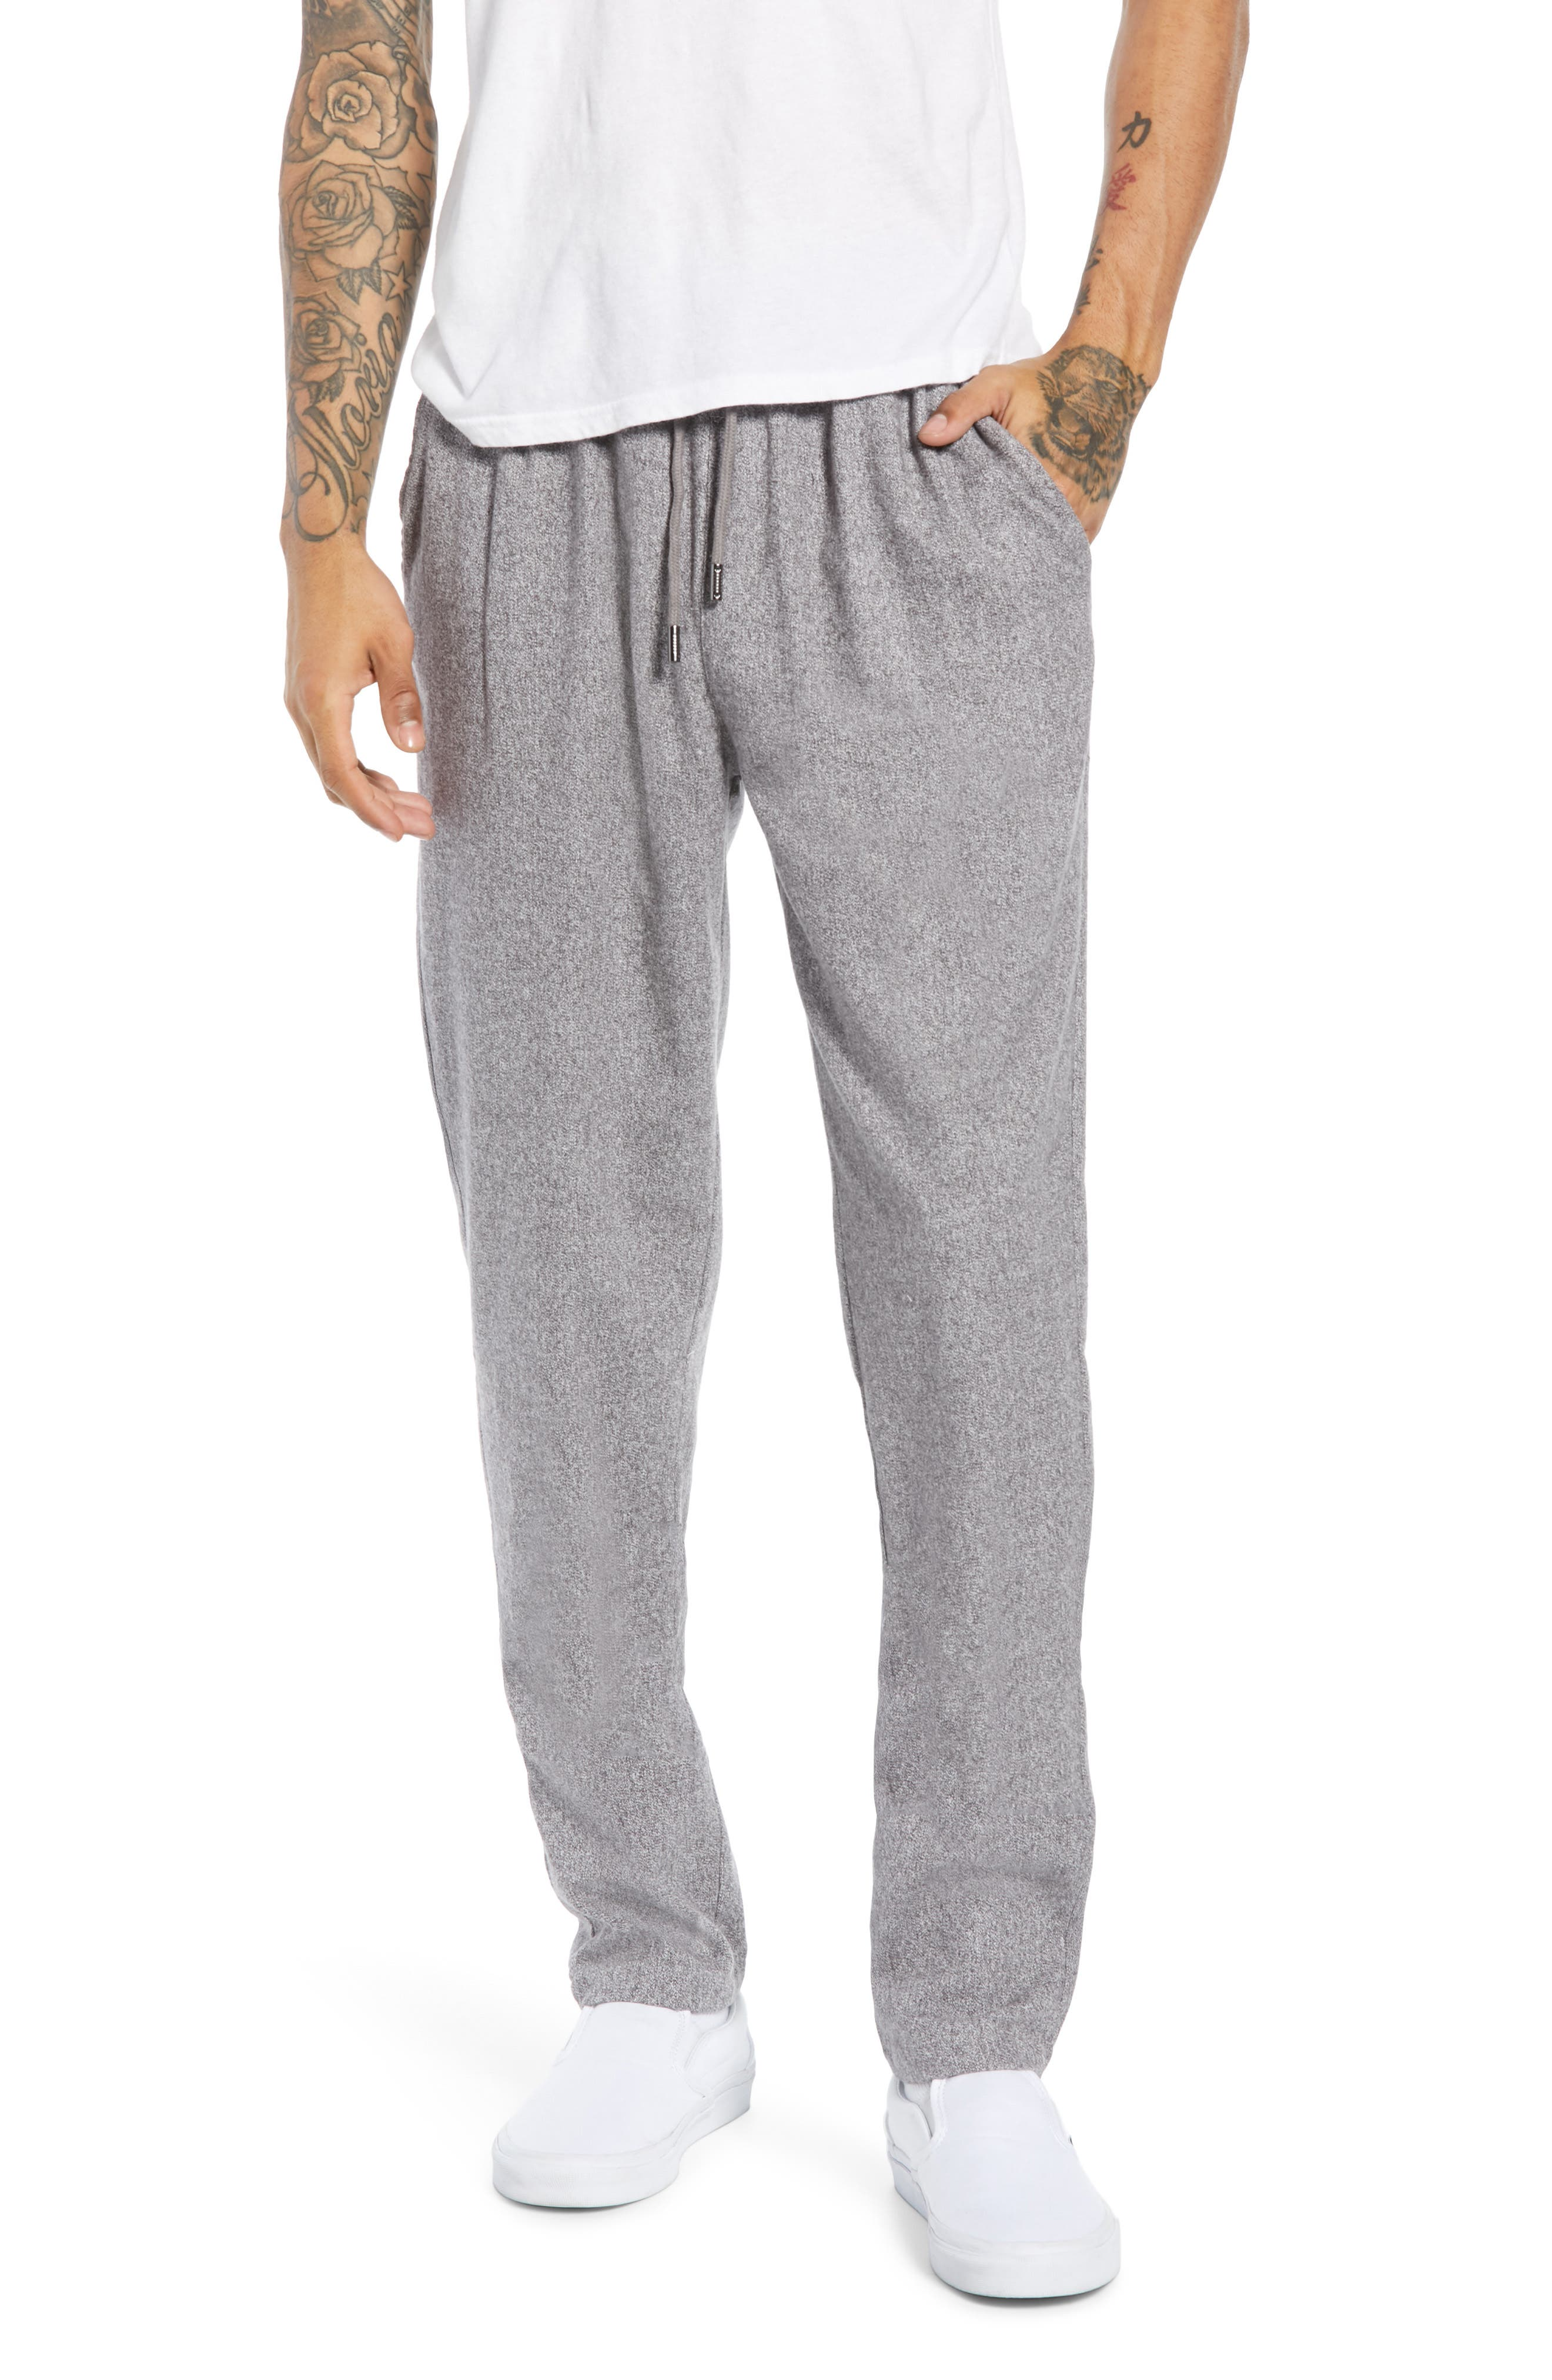 NATIVE YOUTH Slim Fit Knit Pants in Grey